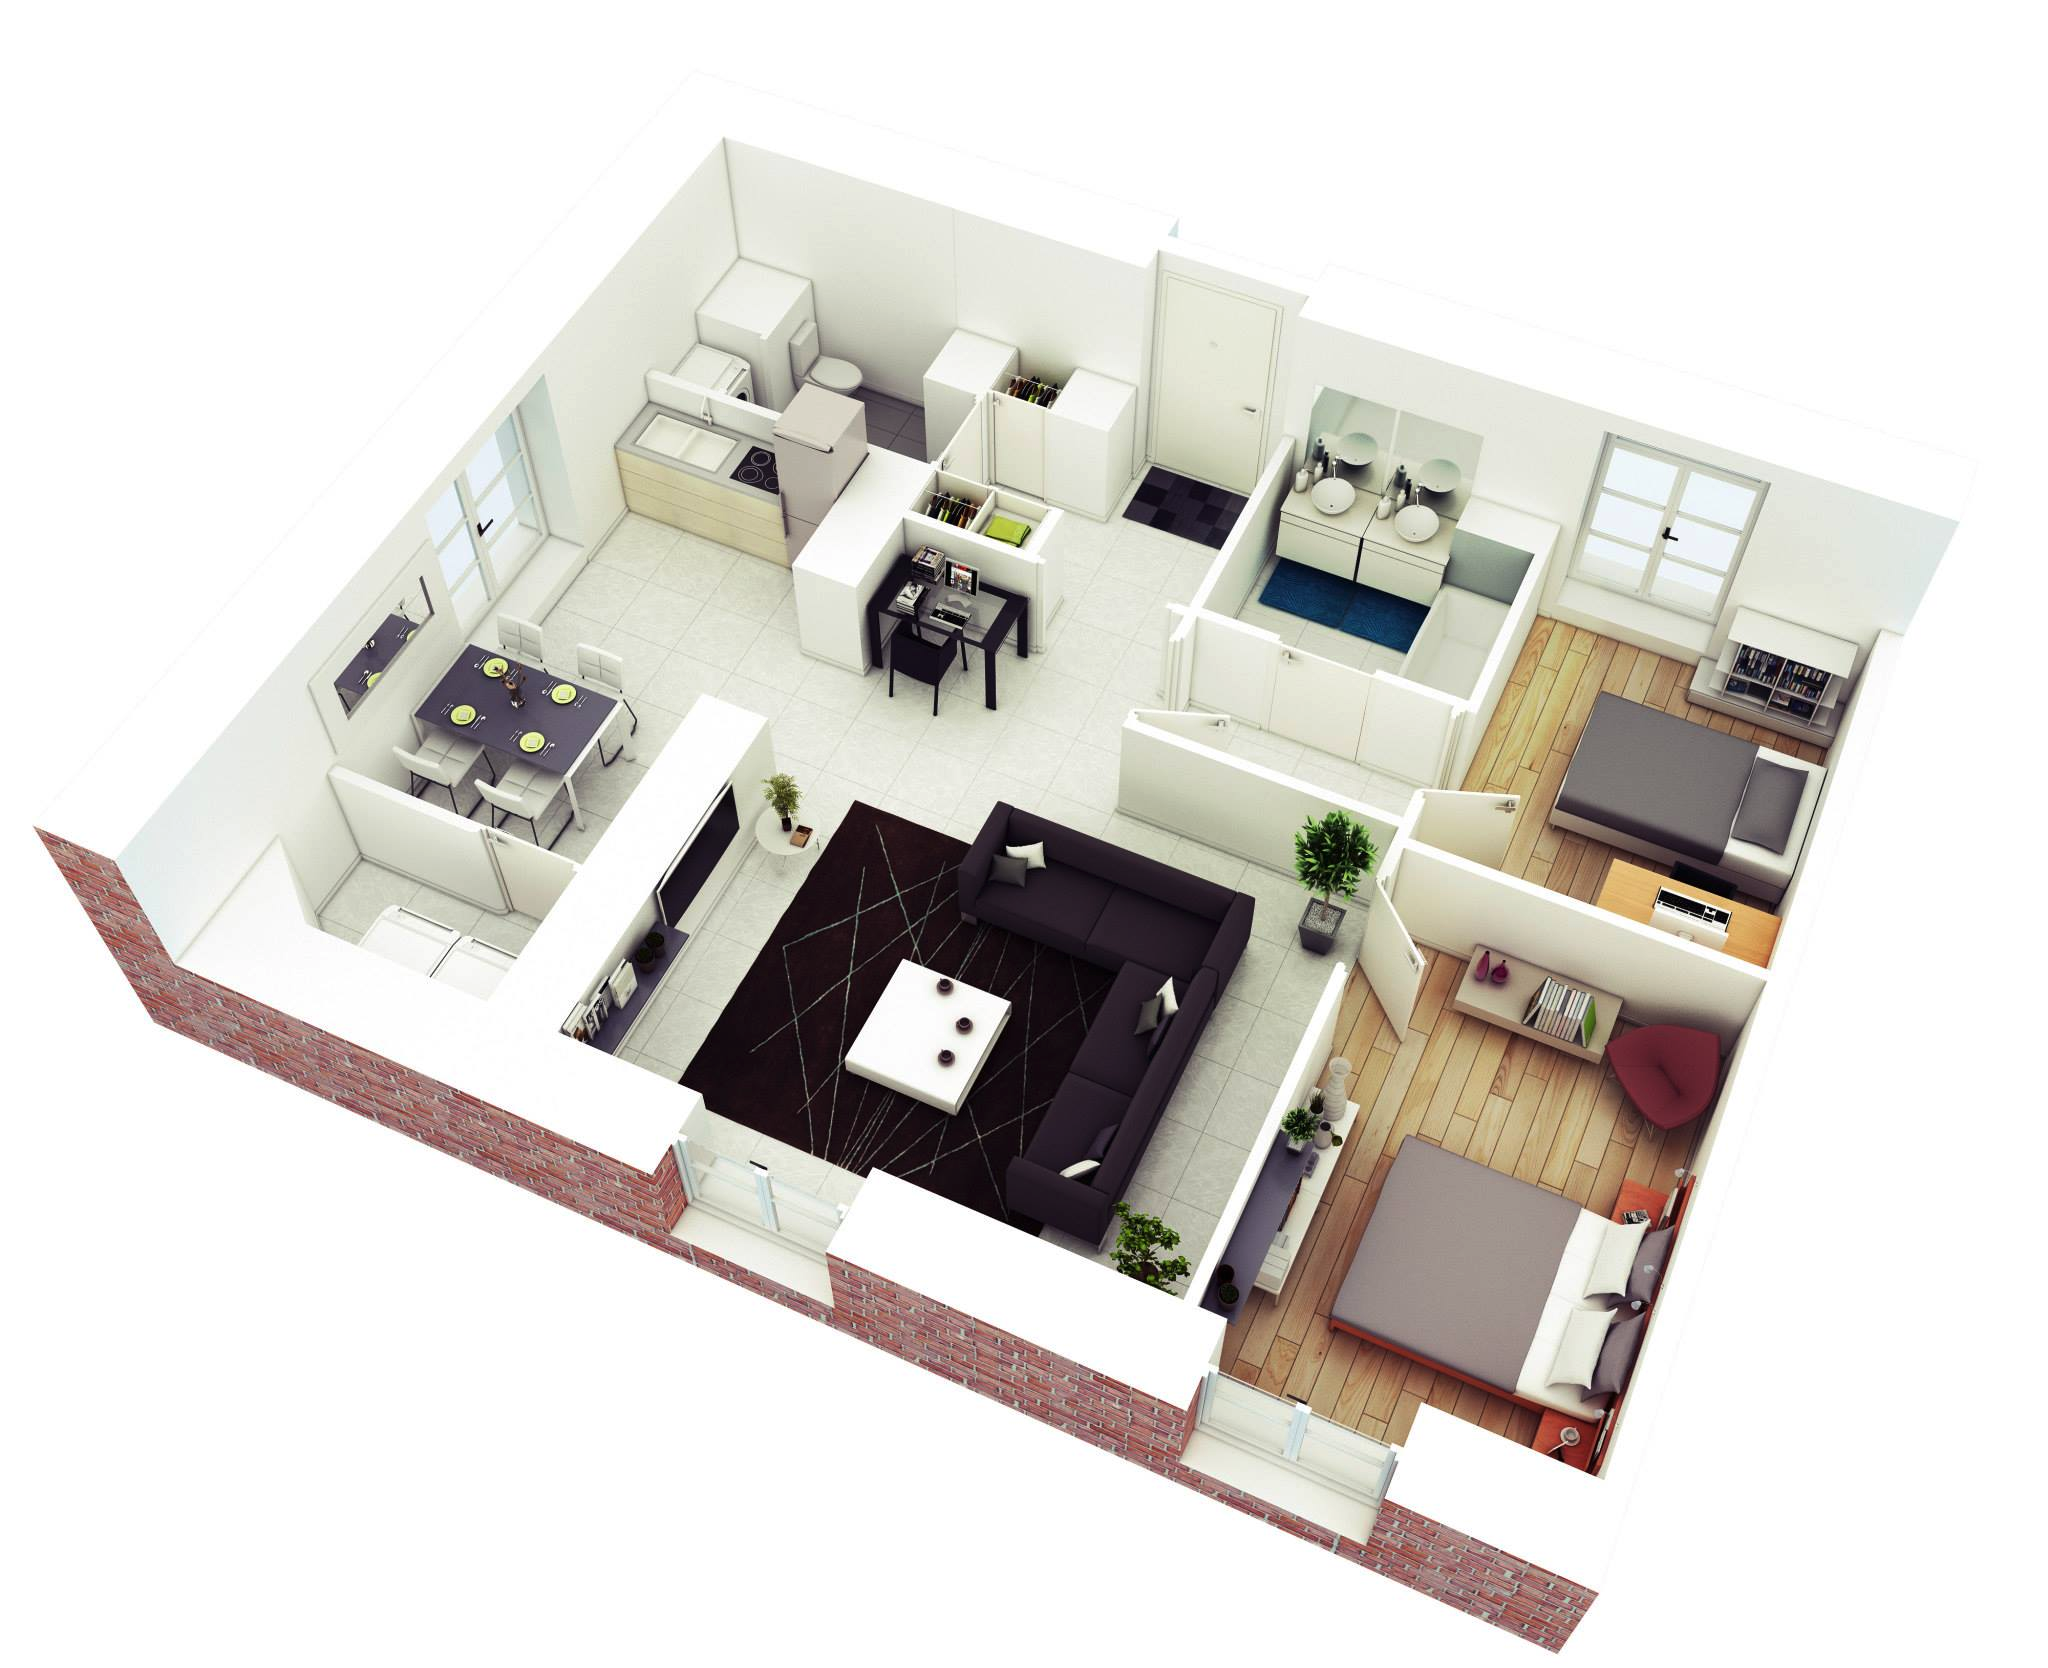 25 more 2 bedroom 3d floor plans 3 interior design portfolio interior design internships